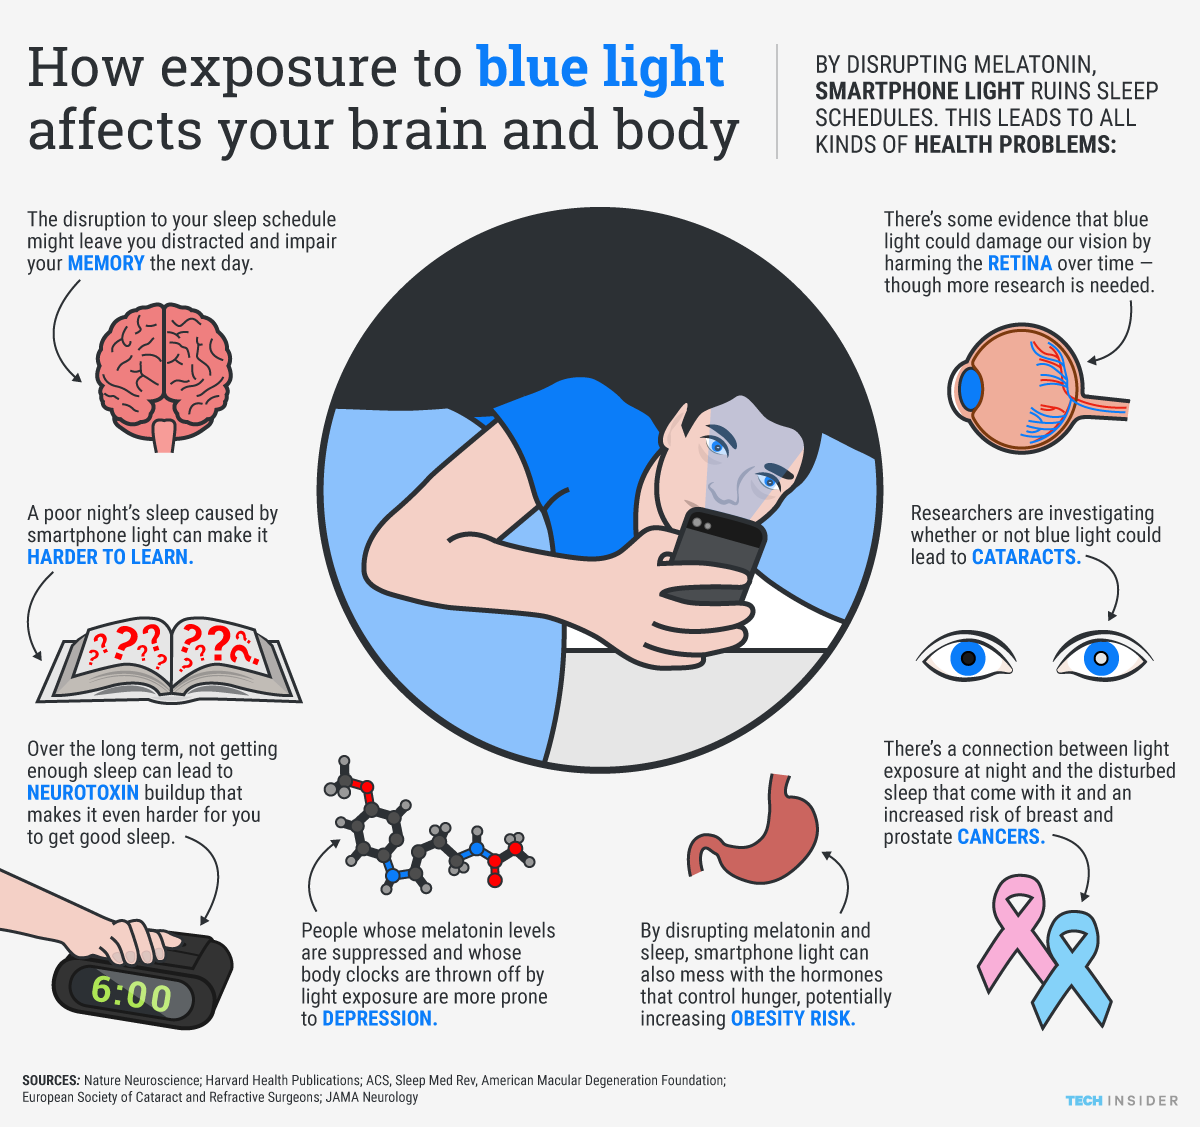 How smartphone light affects your brain and body. Smartphone light can disrupt your sleep cycle, making it harder to fall and stay asleep — and potentially causing serious health problems along the way.